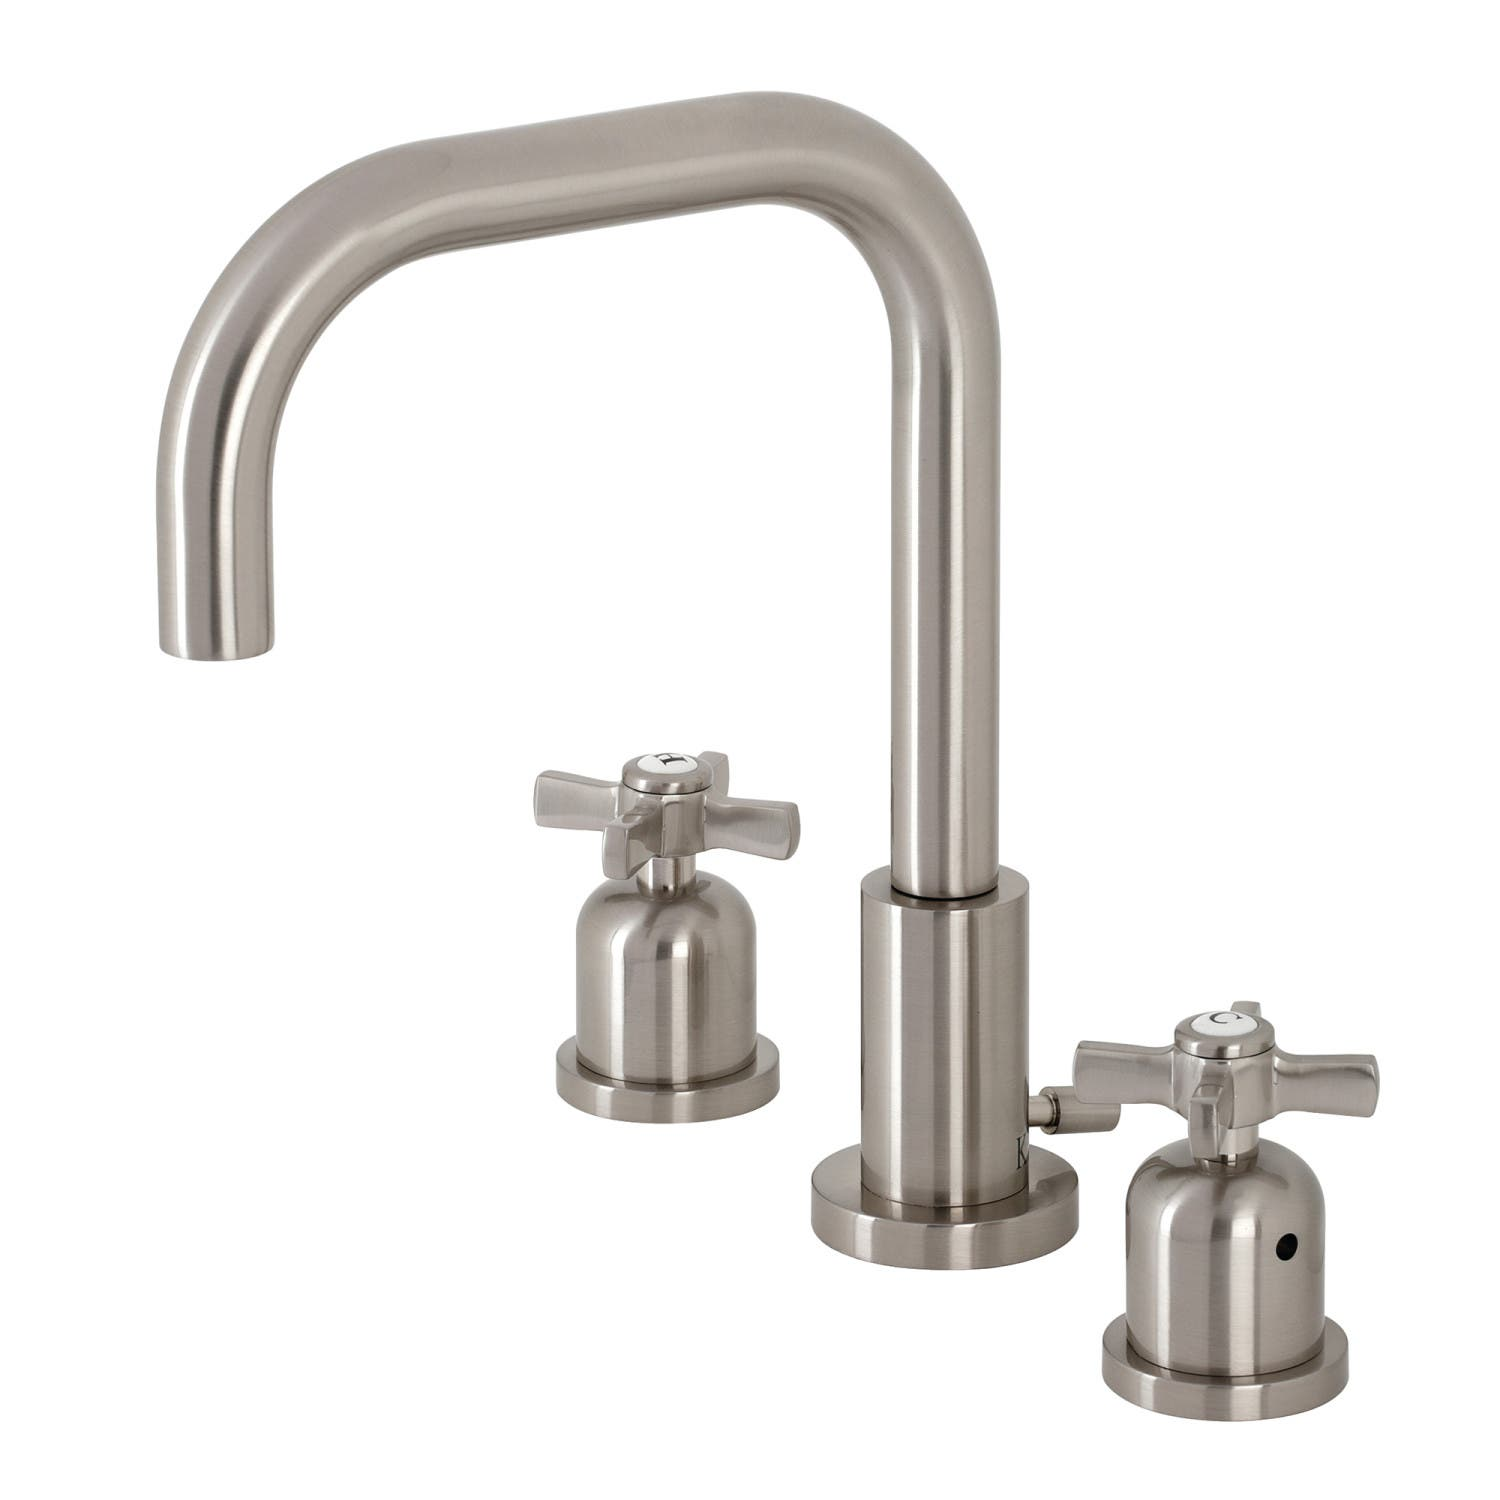 Kingston Brass FSC8938ZX Millennium Widespread Bathroom Faucet with Brass Pop-Up, Brushed Nickel